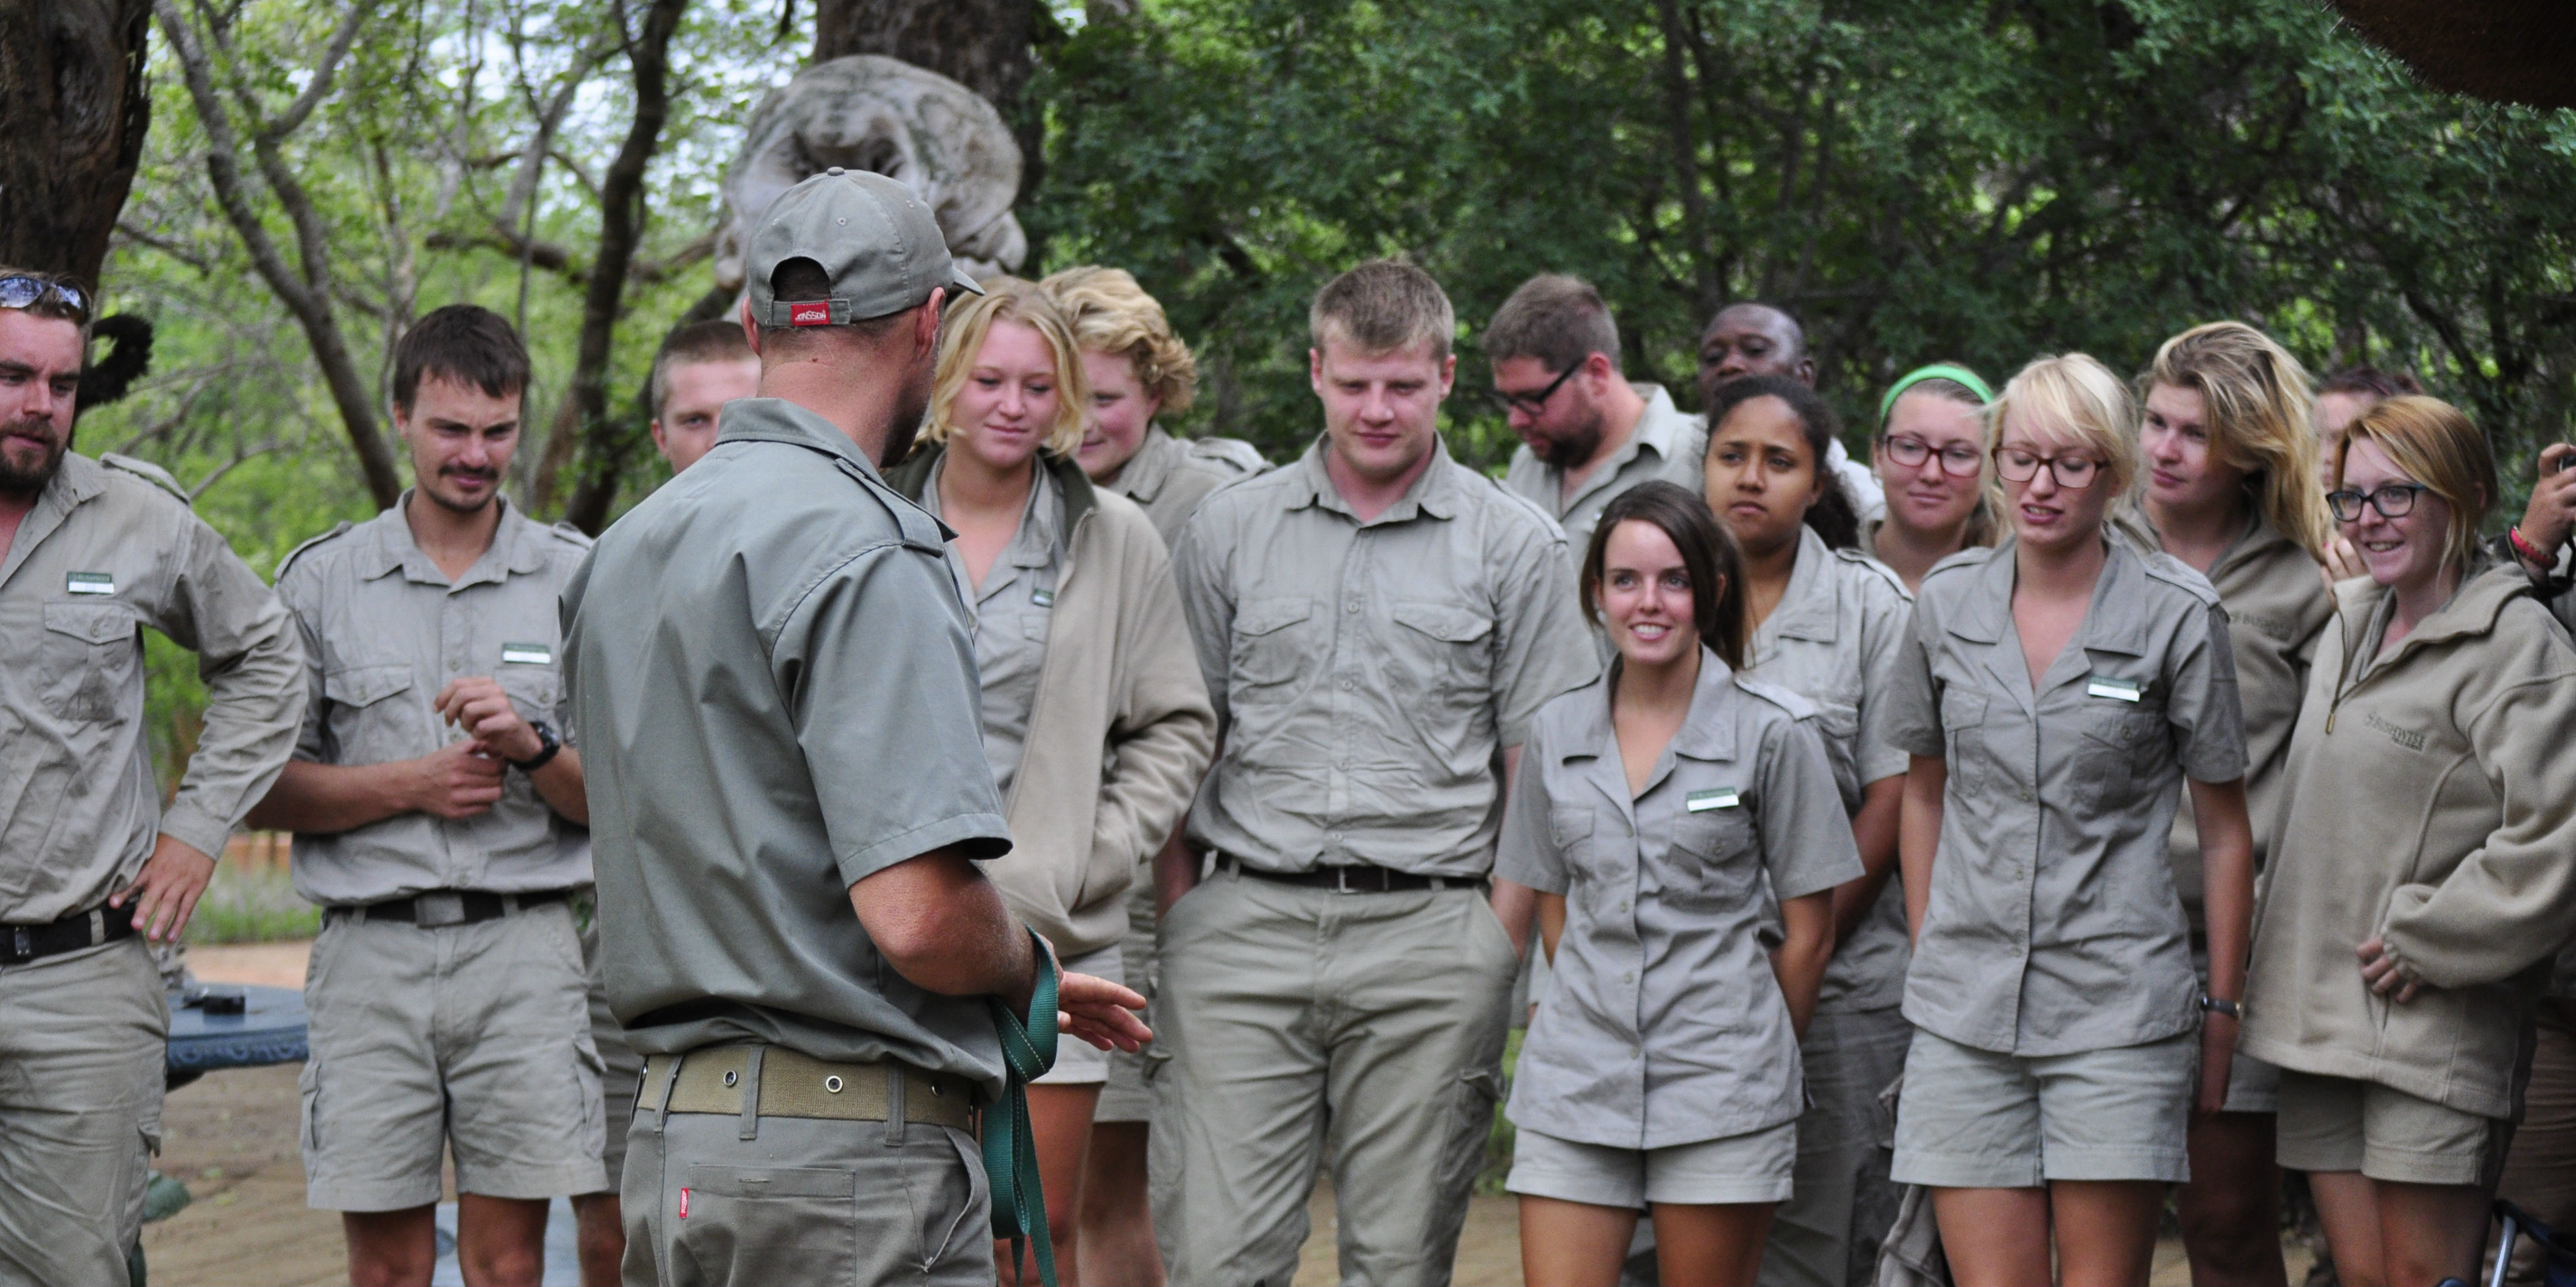 Participants complete their FGASA Field Guide Training while on their gap year.